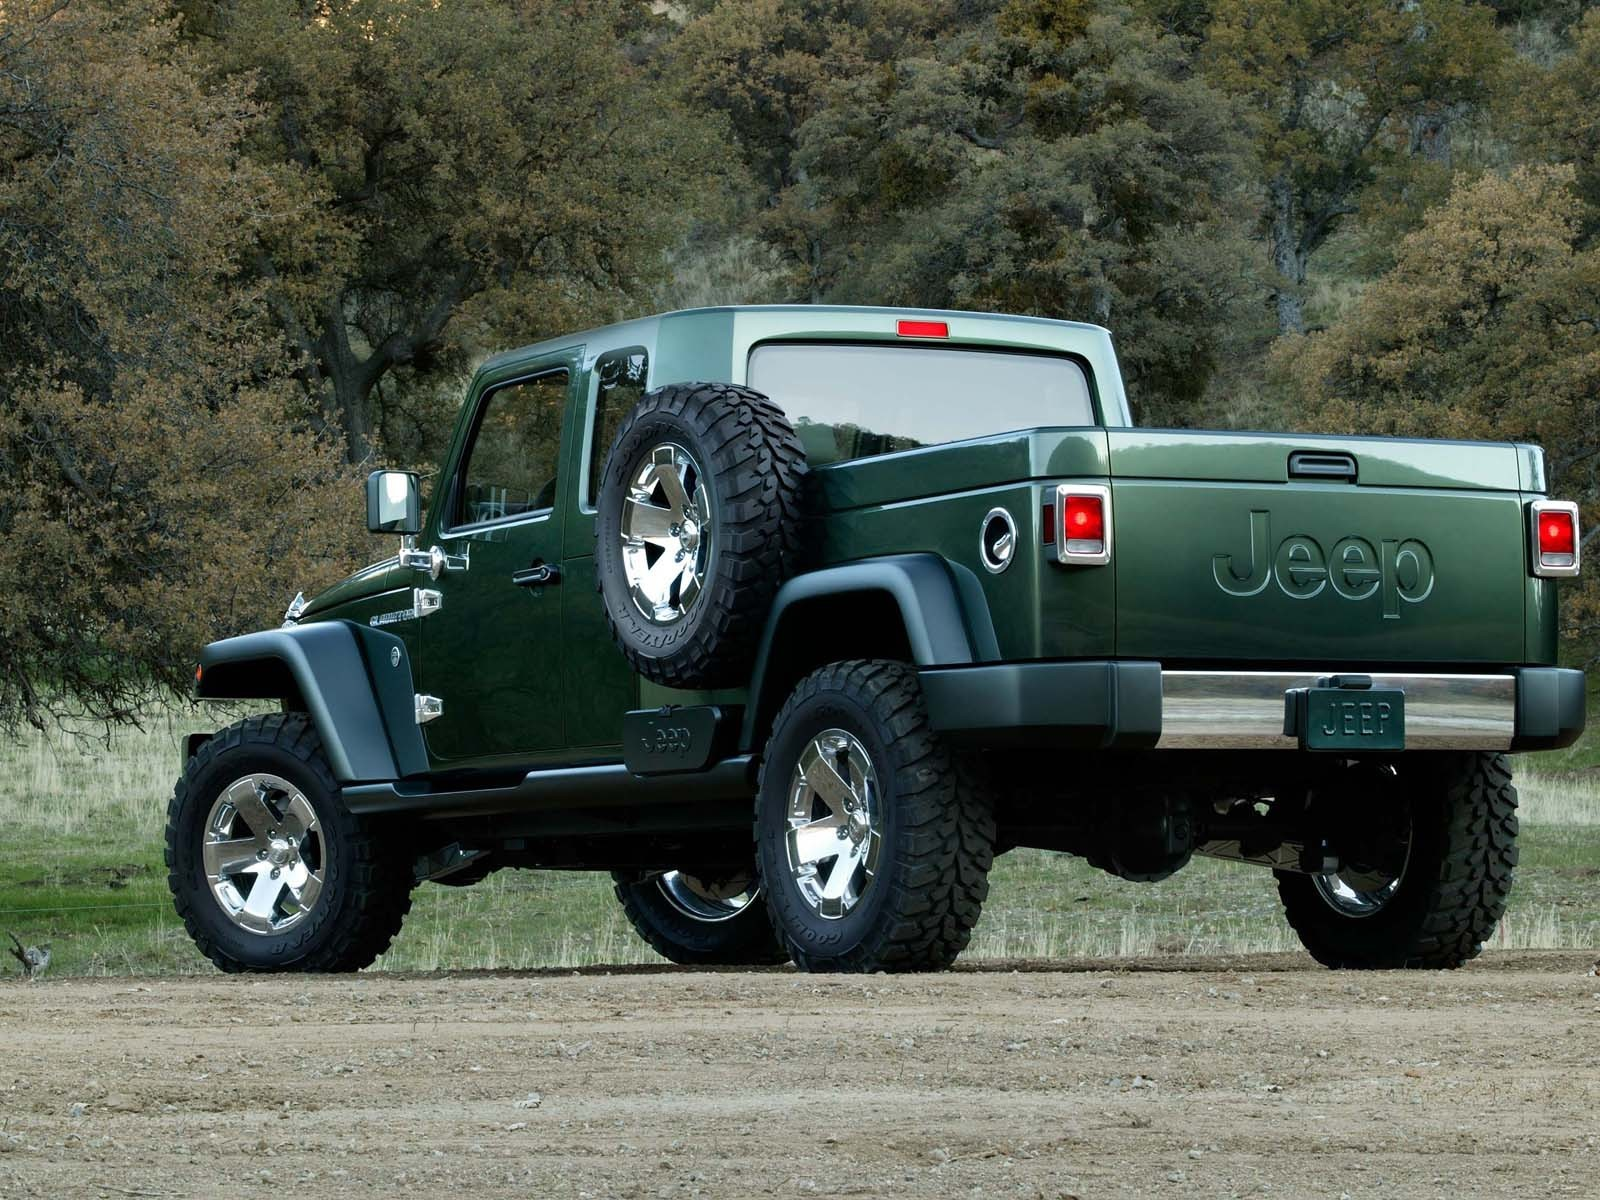 2016 Jeep Gladiator >> Visual Comparison Between The 2020 Jeep Gladiator And The